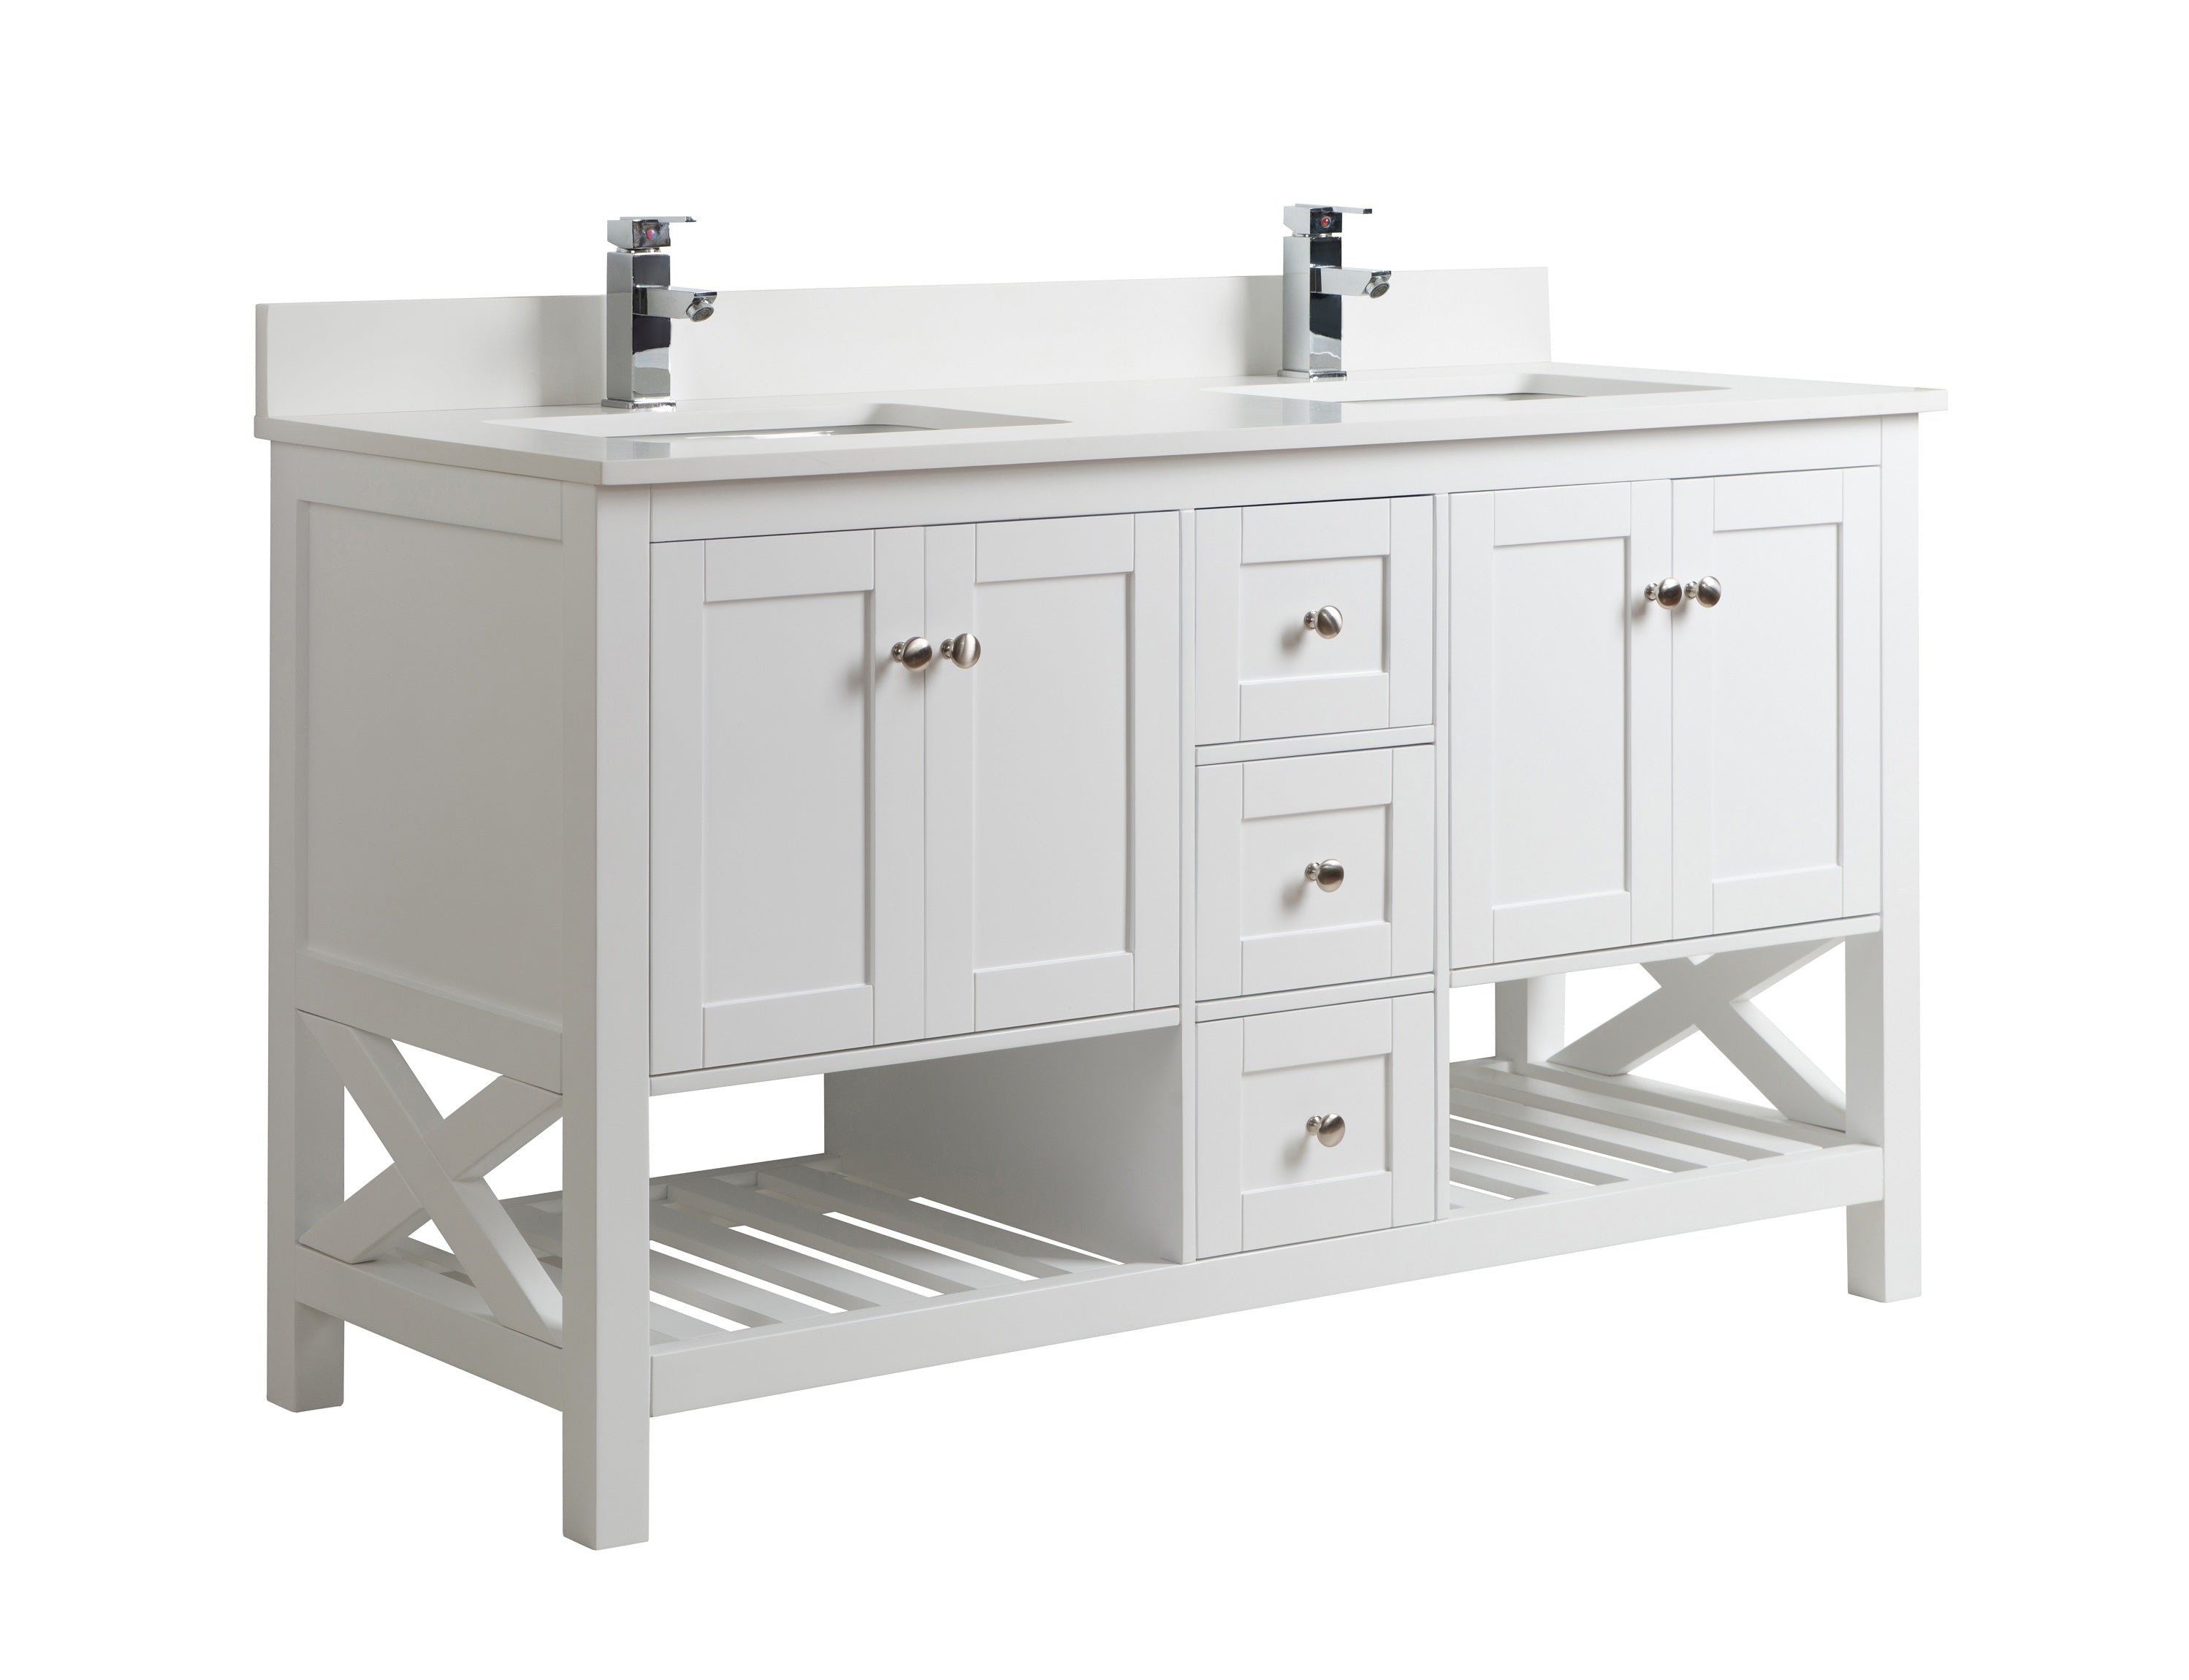 59 Taiya Bathroom Vanity In Toga White Double Sink Broadway